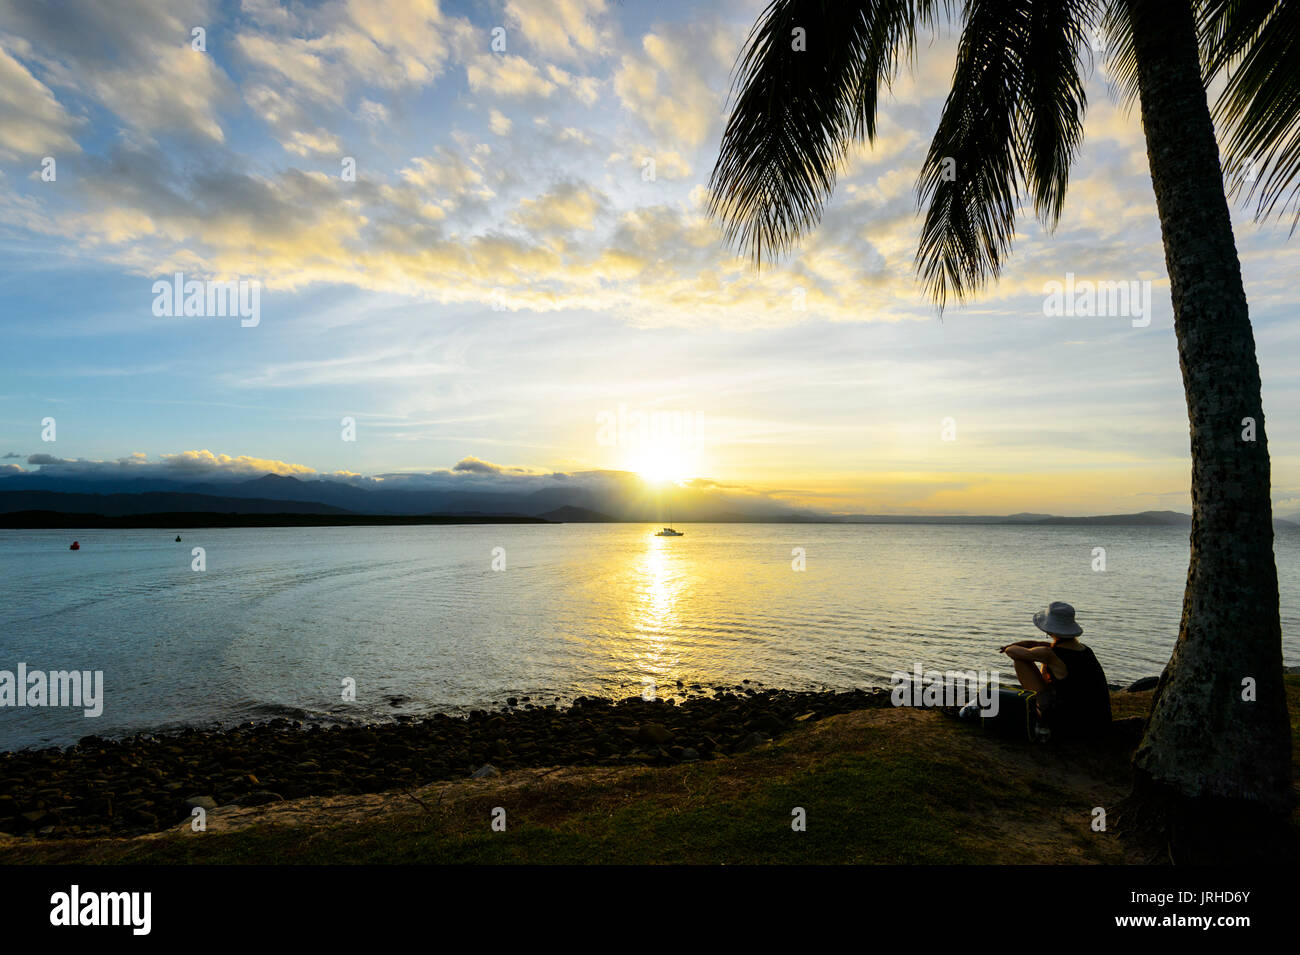 Femme regardant le coucher du soleil à partir de Rex Smeal Park, Port Douglas, Far North Queensland, Queensland, Australie, FNQ Photo Stock